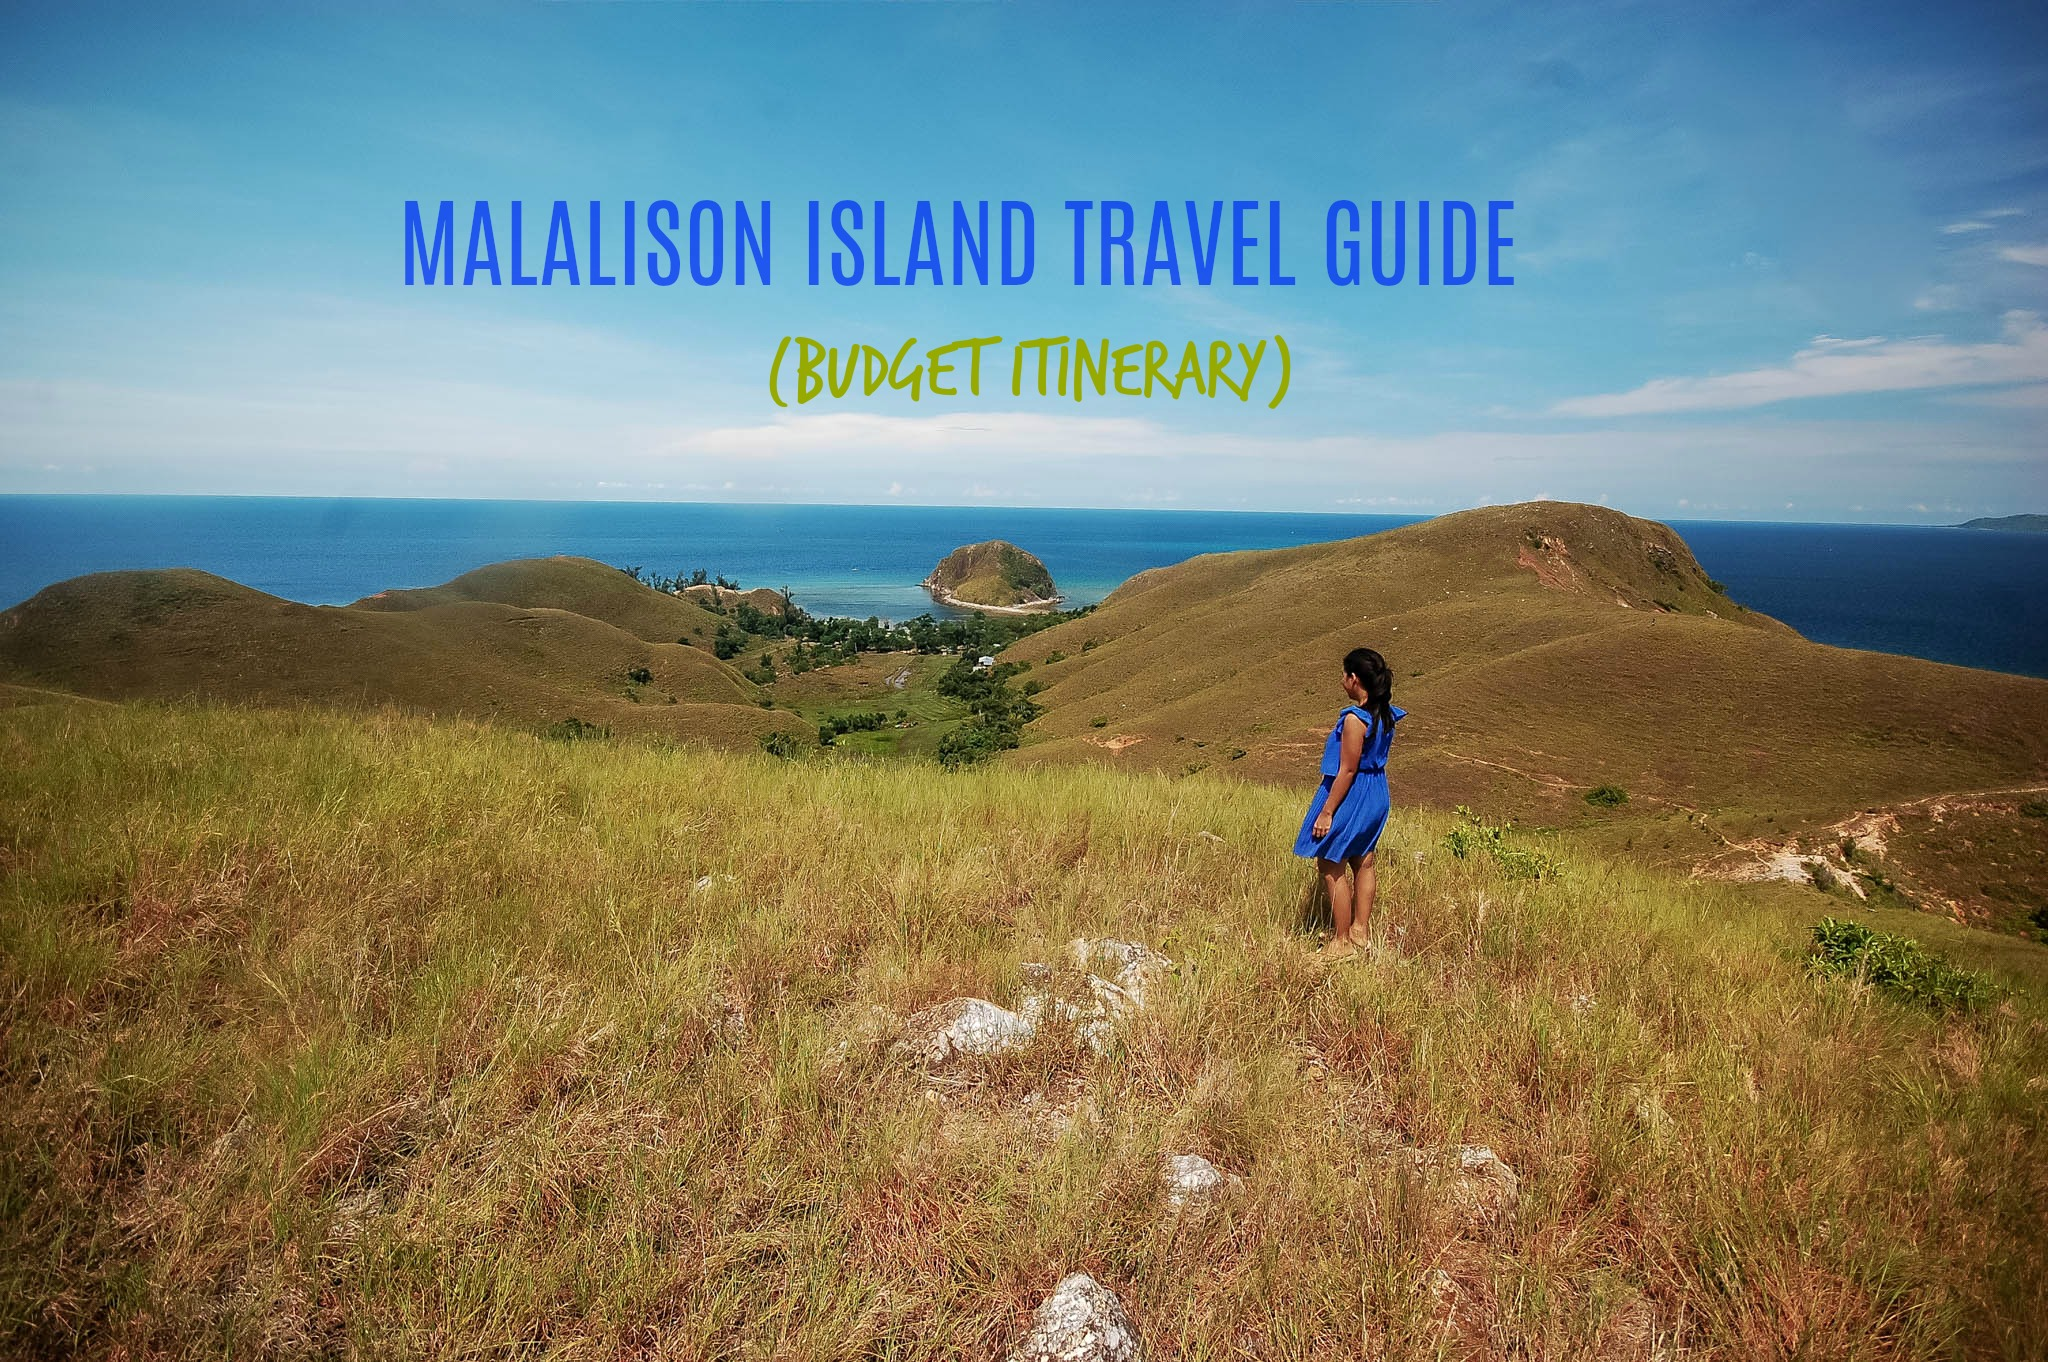 Malalison Island Travel Guide